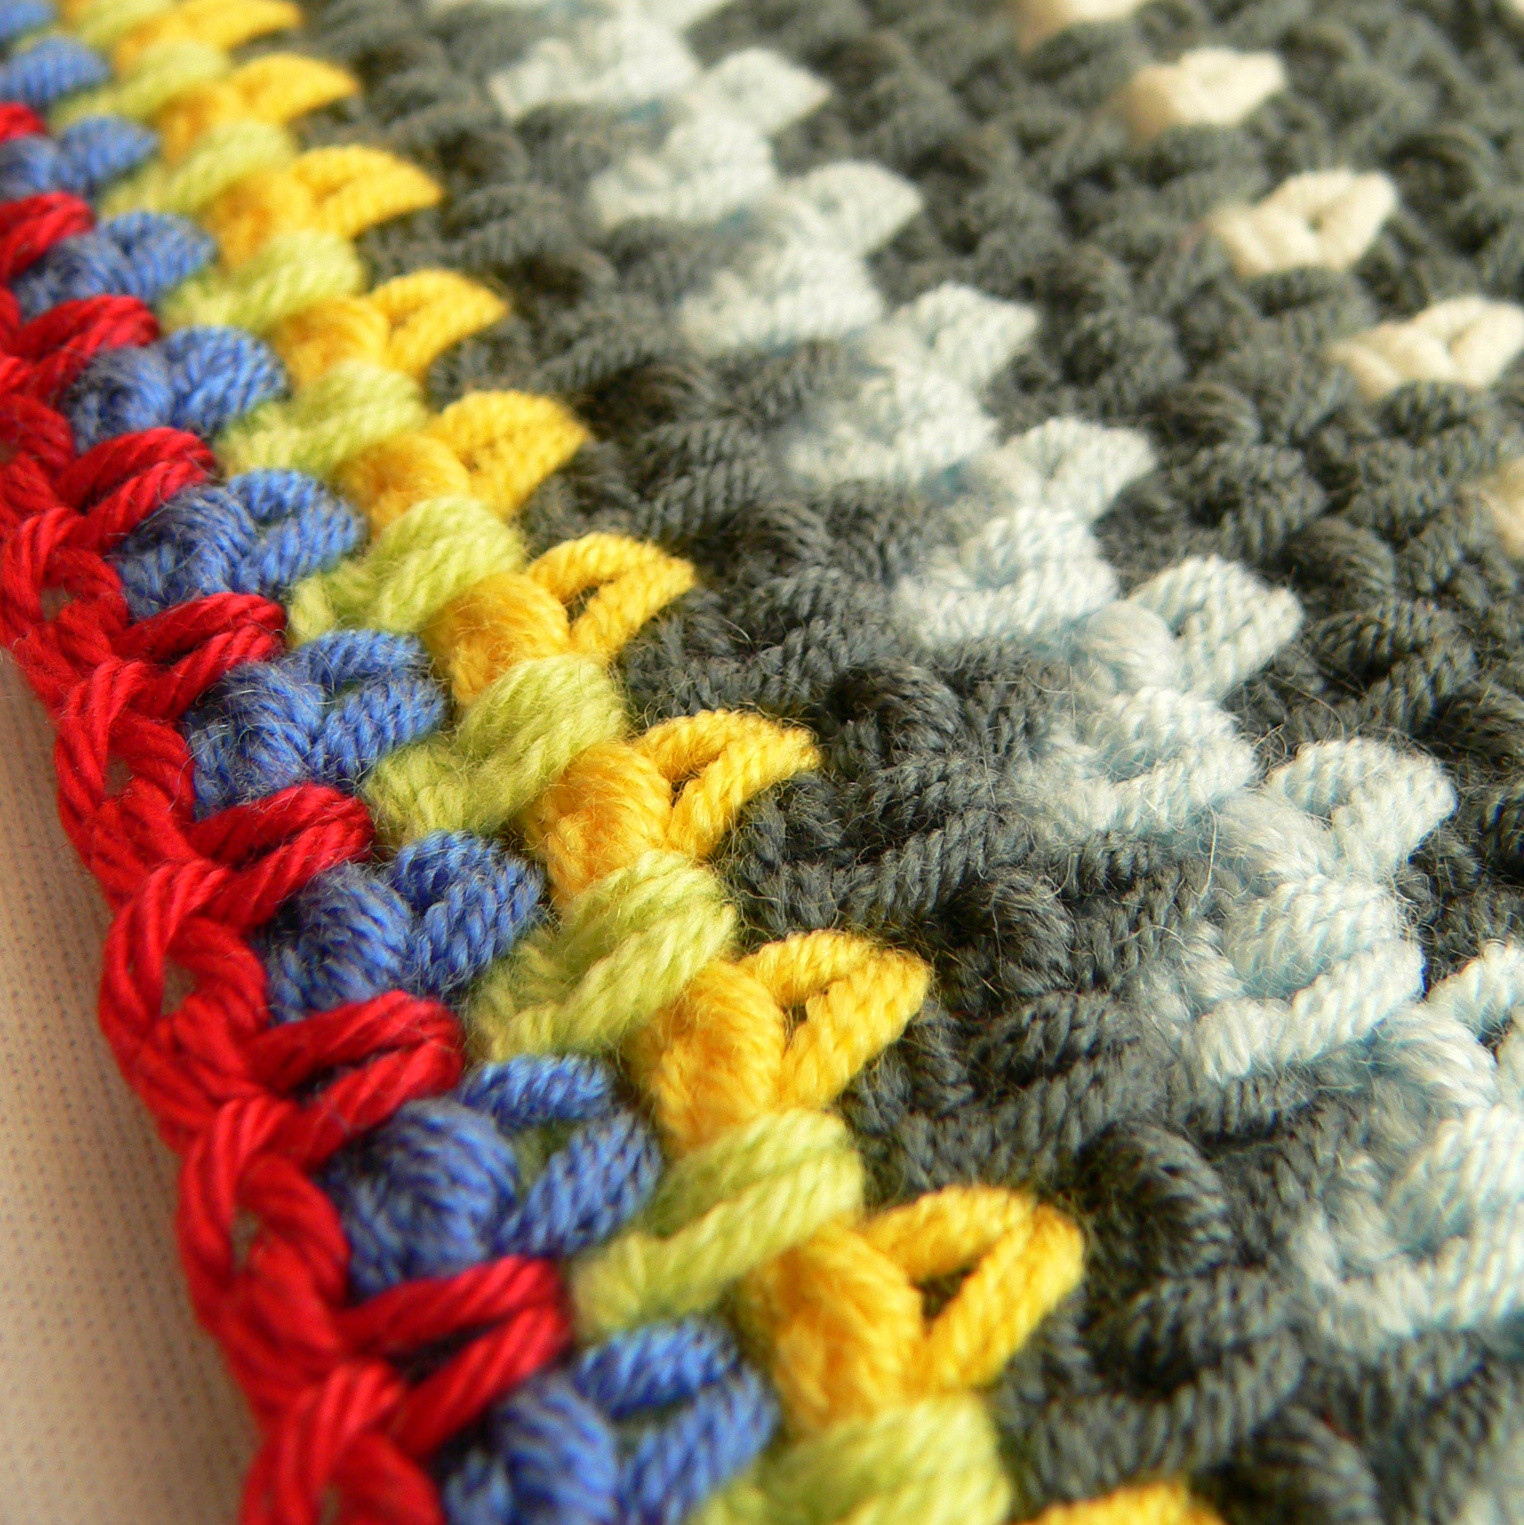 Different Crochet Stitches Inspirational 16 Different Crochet Stitches to Try Of Amazing 46 Images Different Crochet Stitches